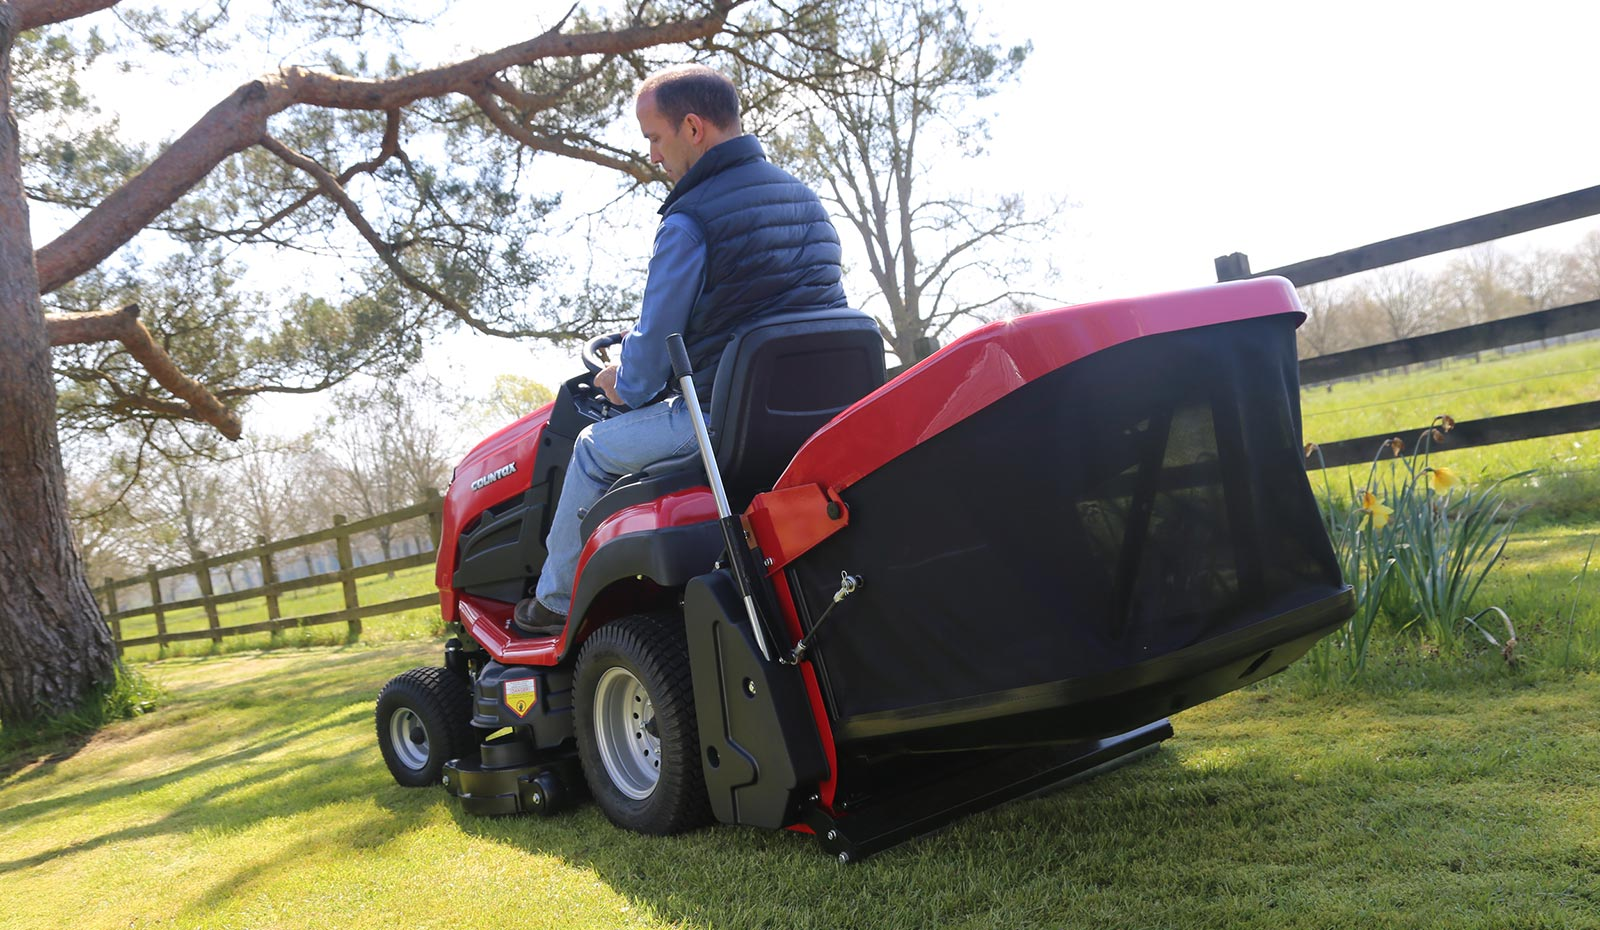 Countax C Series C40 lawn garden tractor ride-on mower